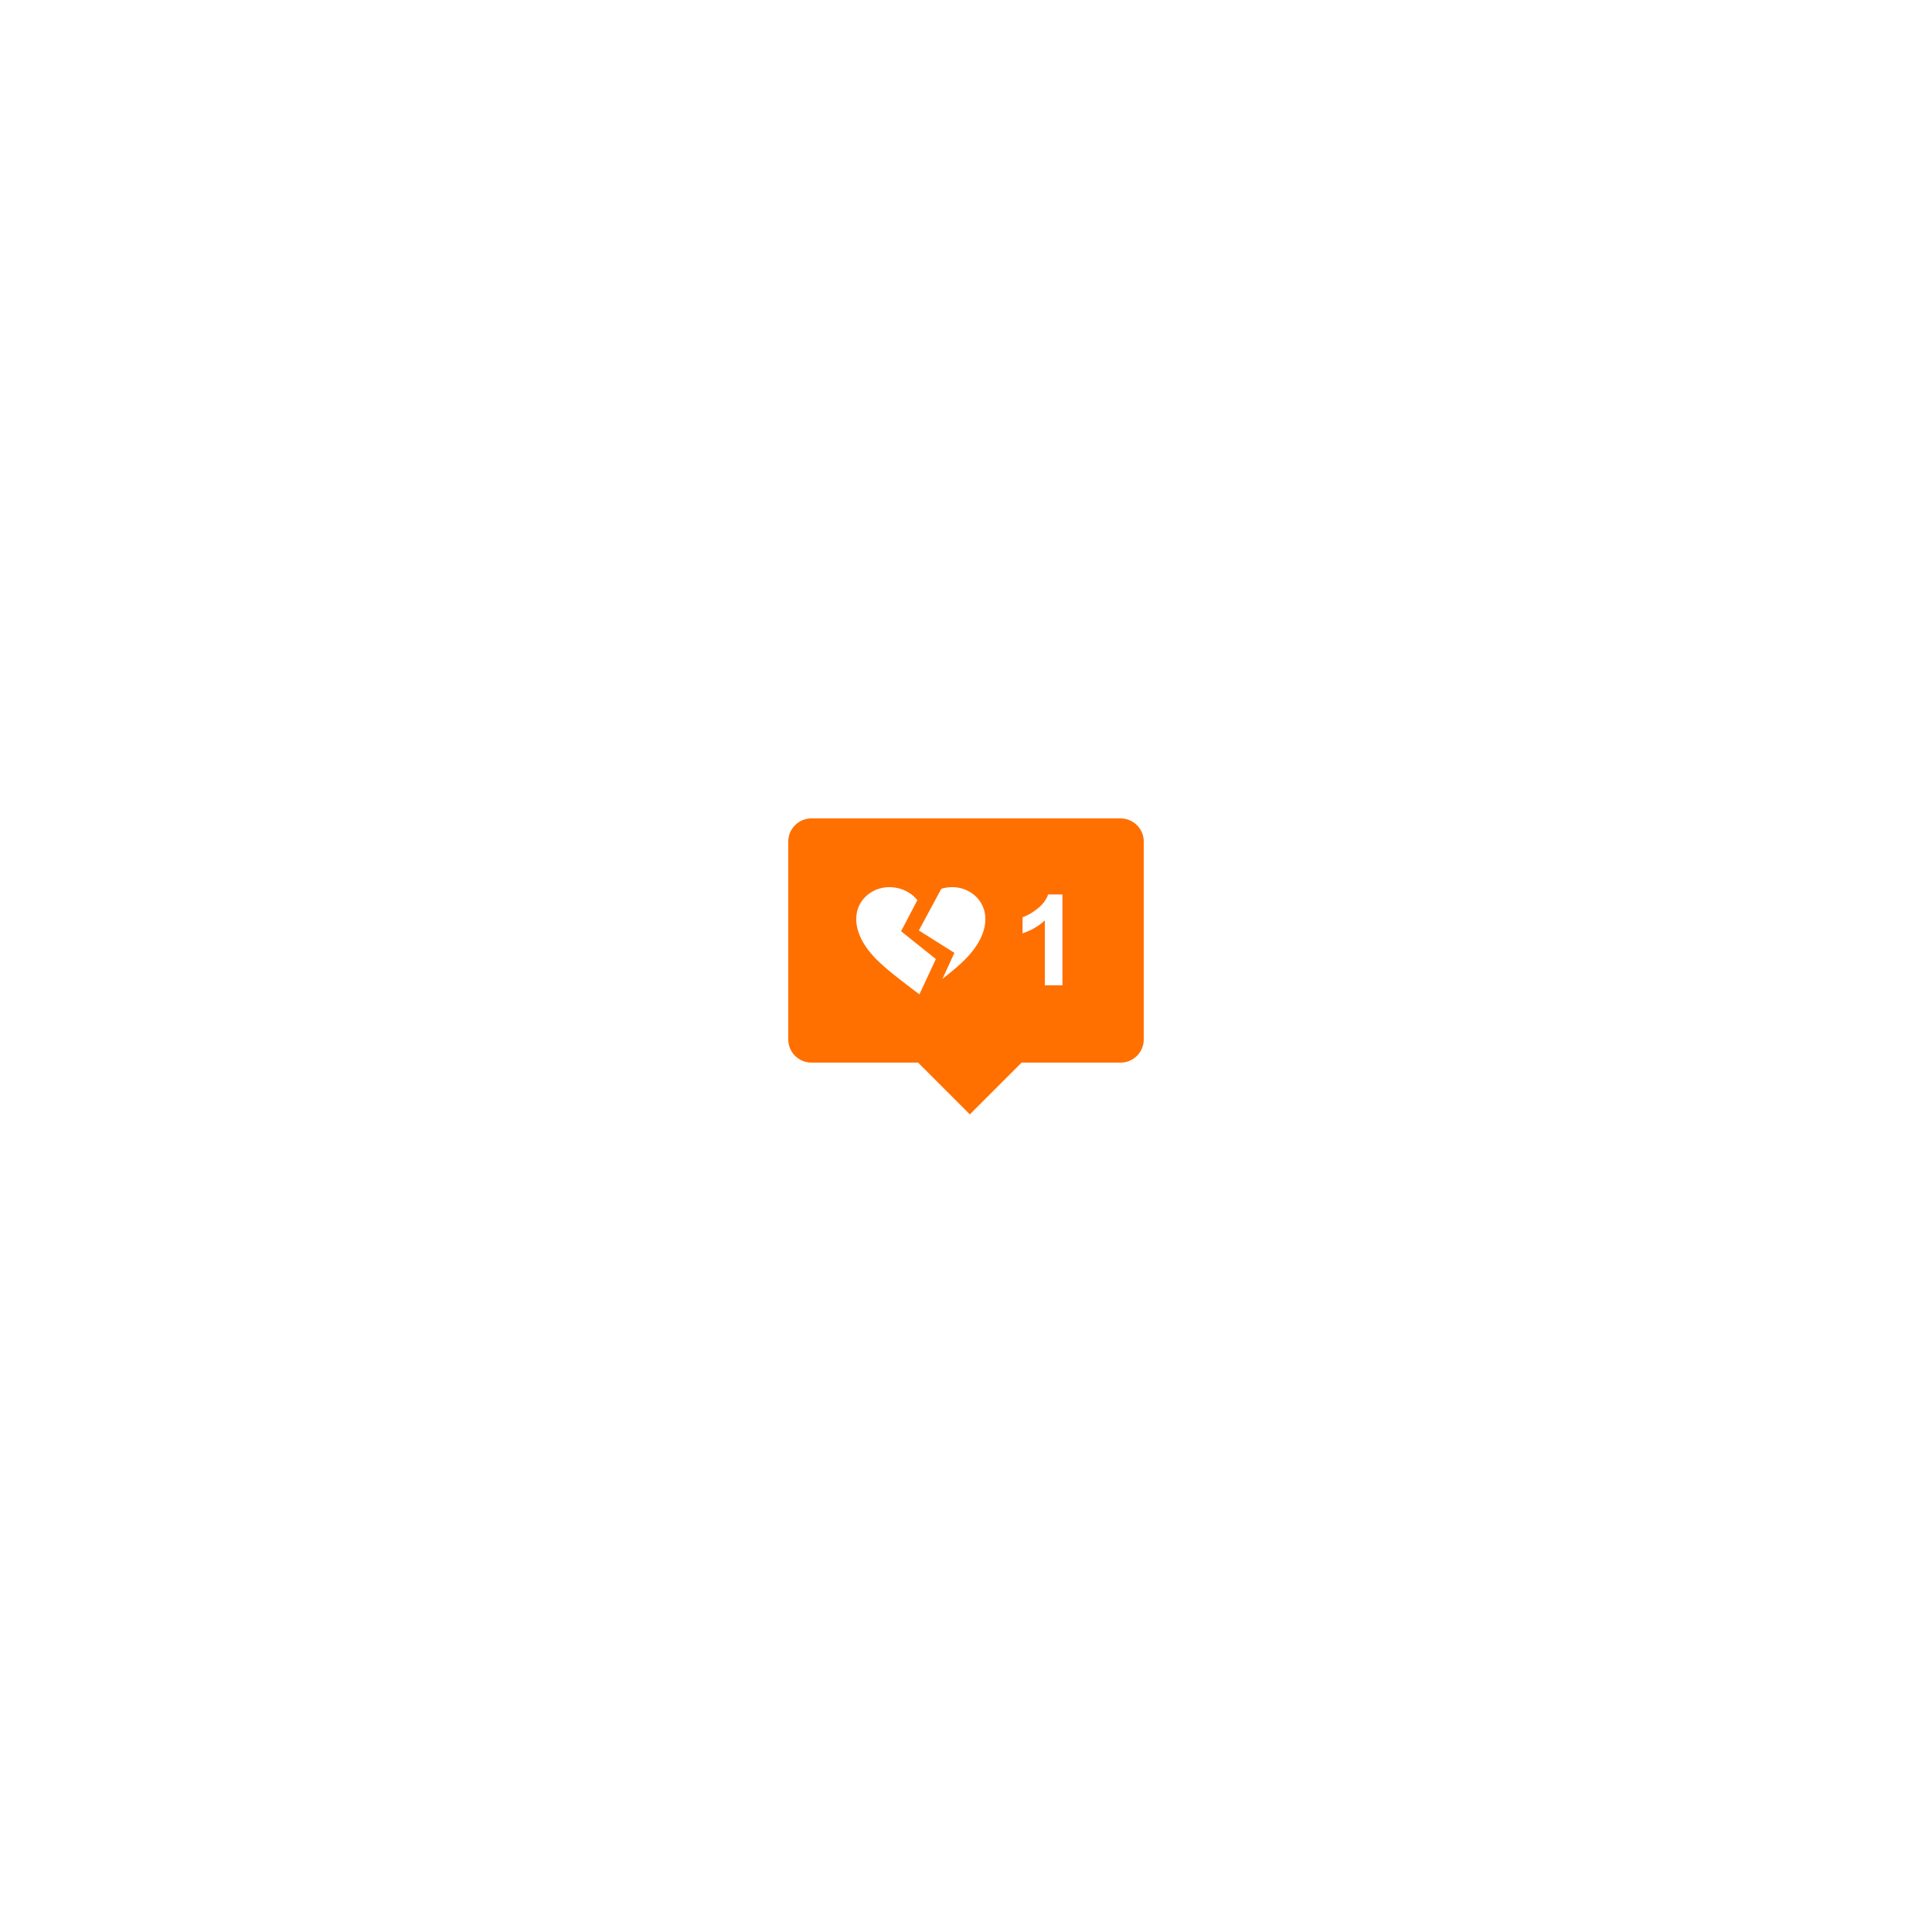 Instagram like icon png. Shared by jmkxyy